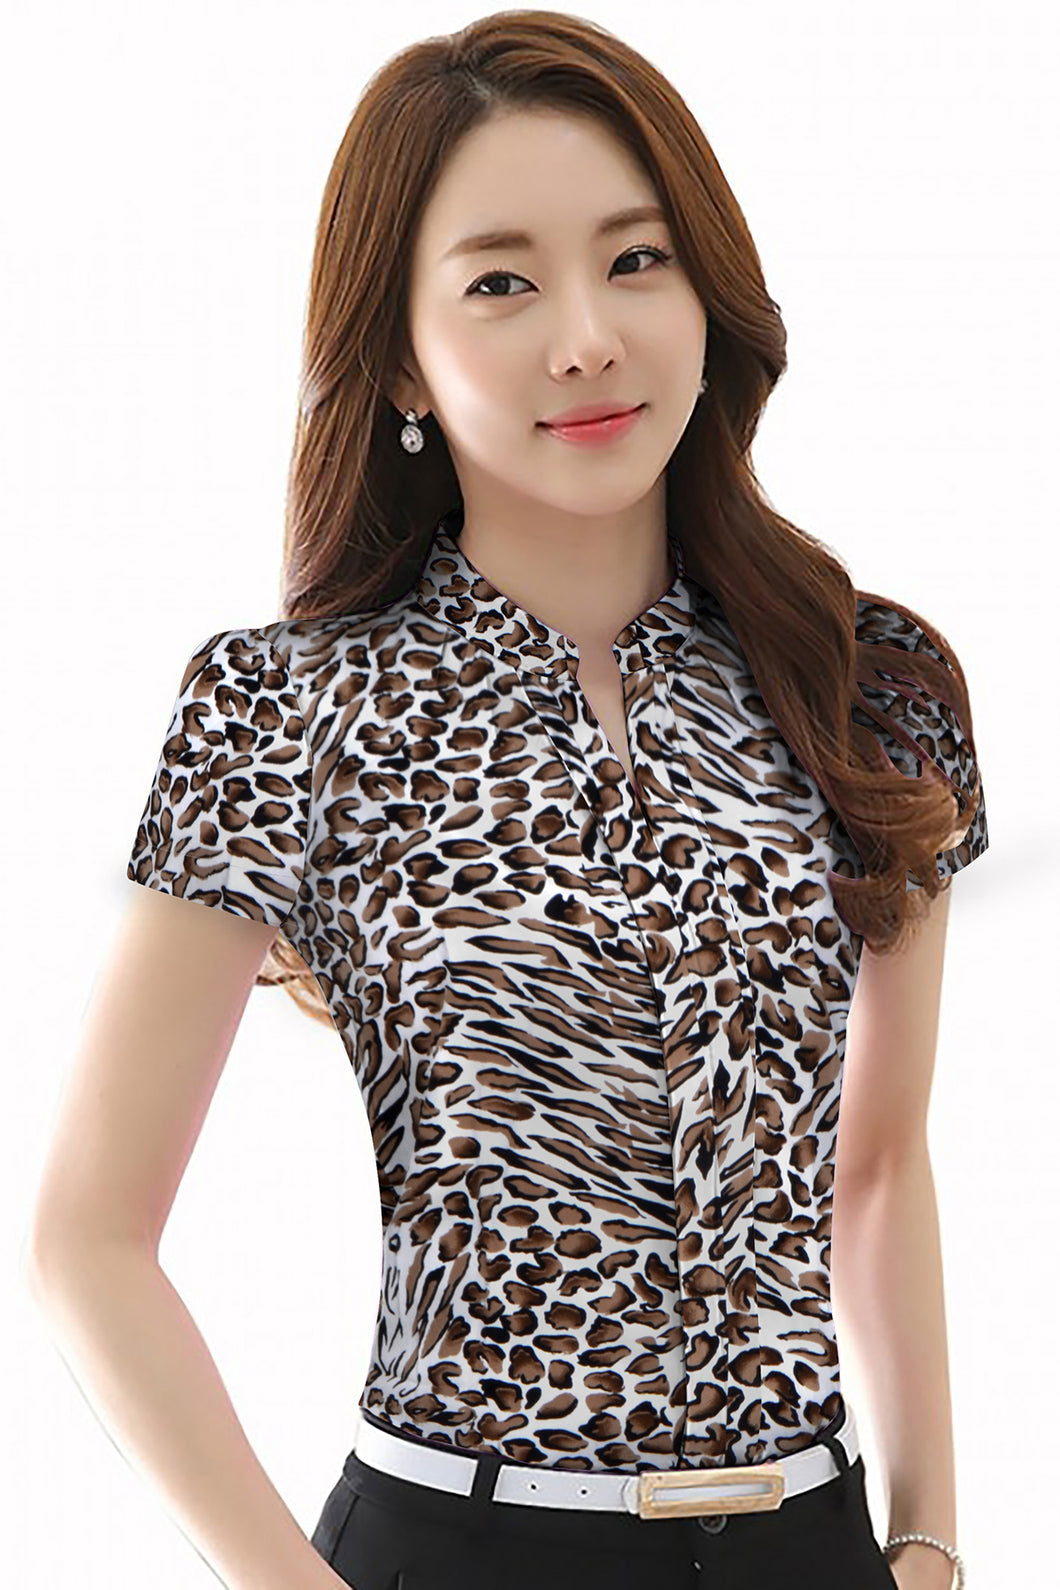 Mandarin Collar abstract print Shirt style top Leopard Print - ForHar Closet